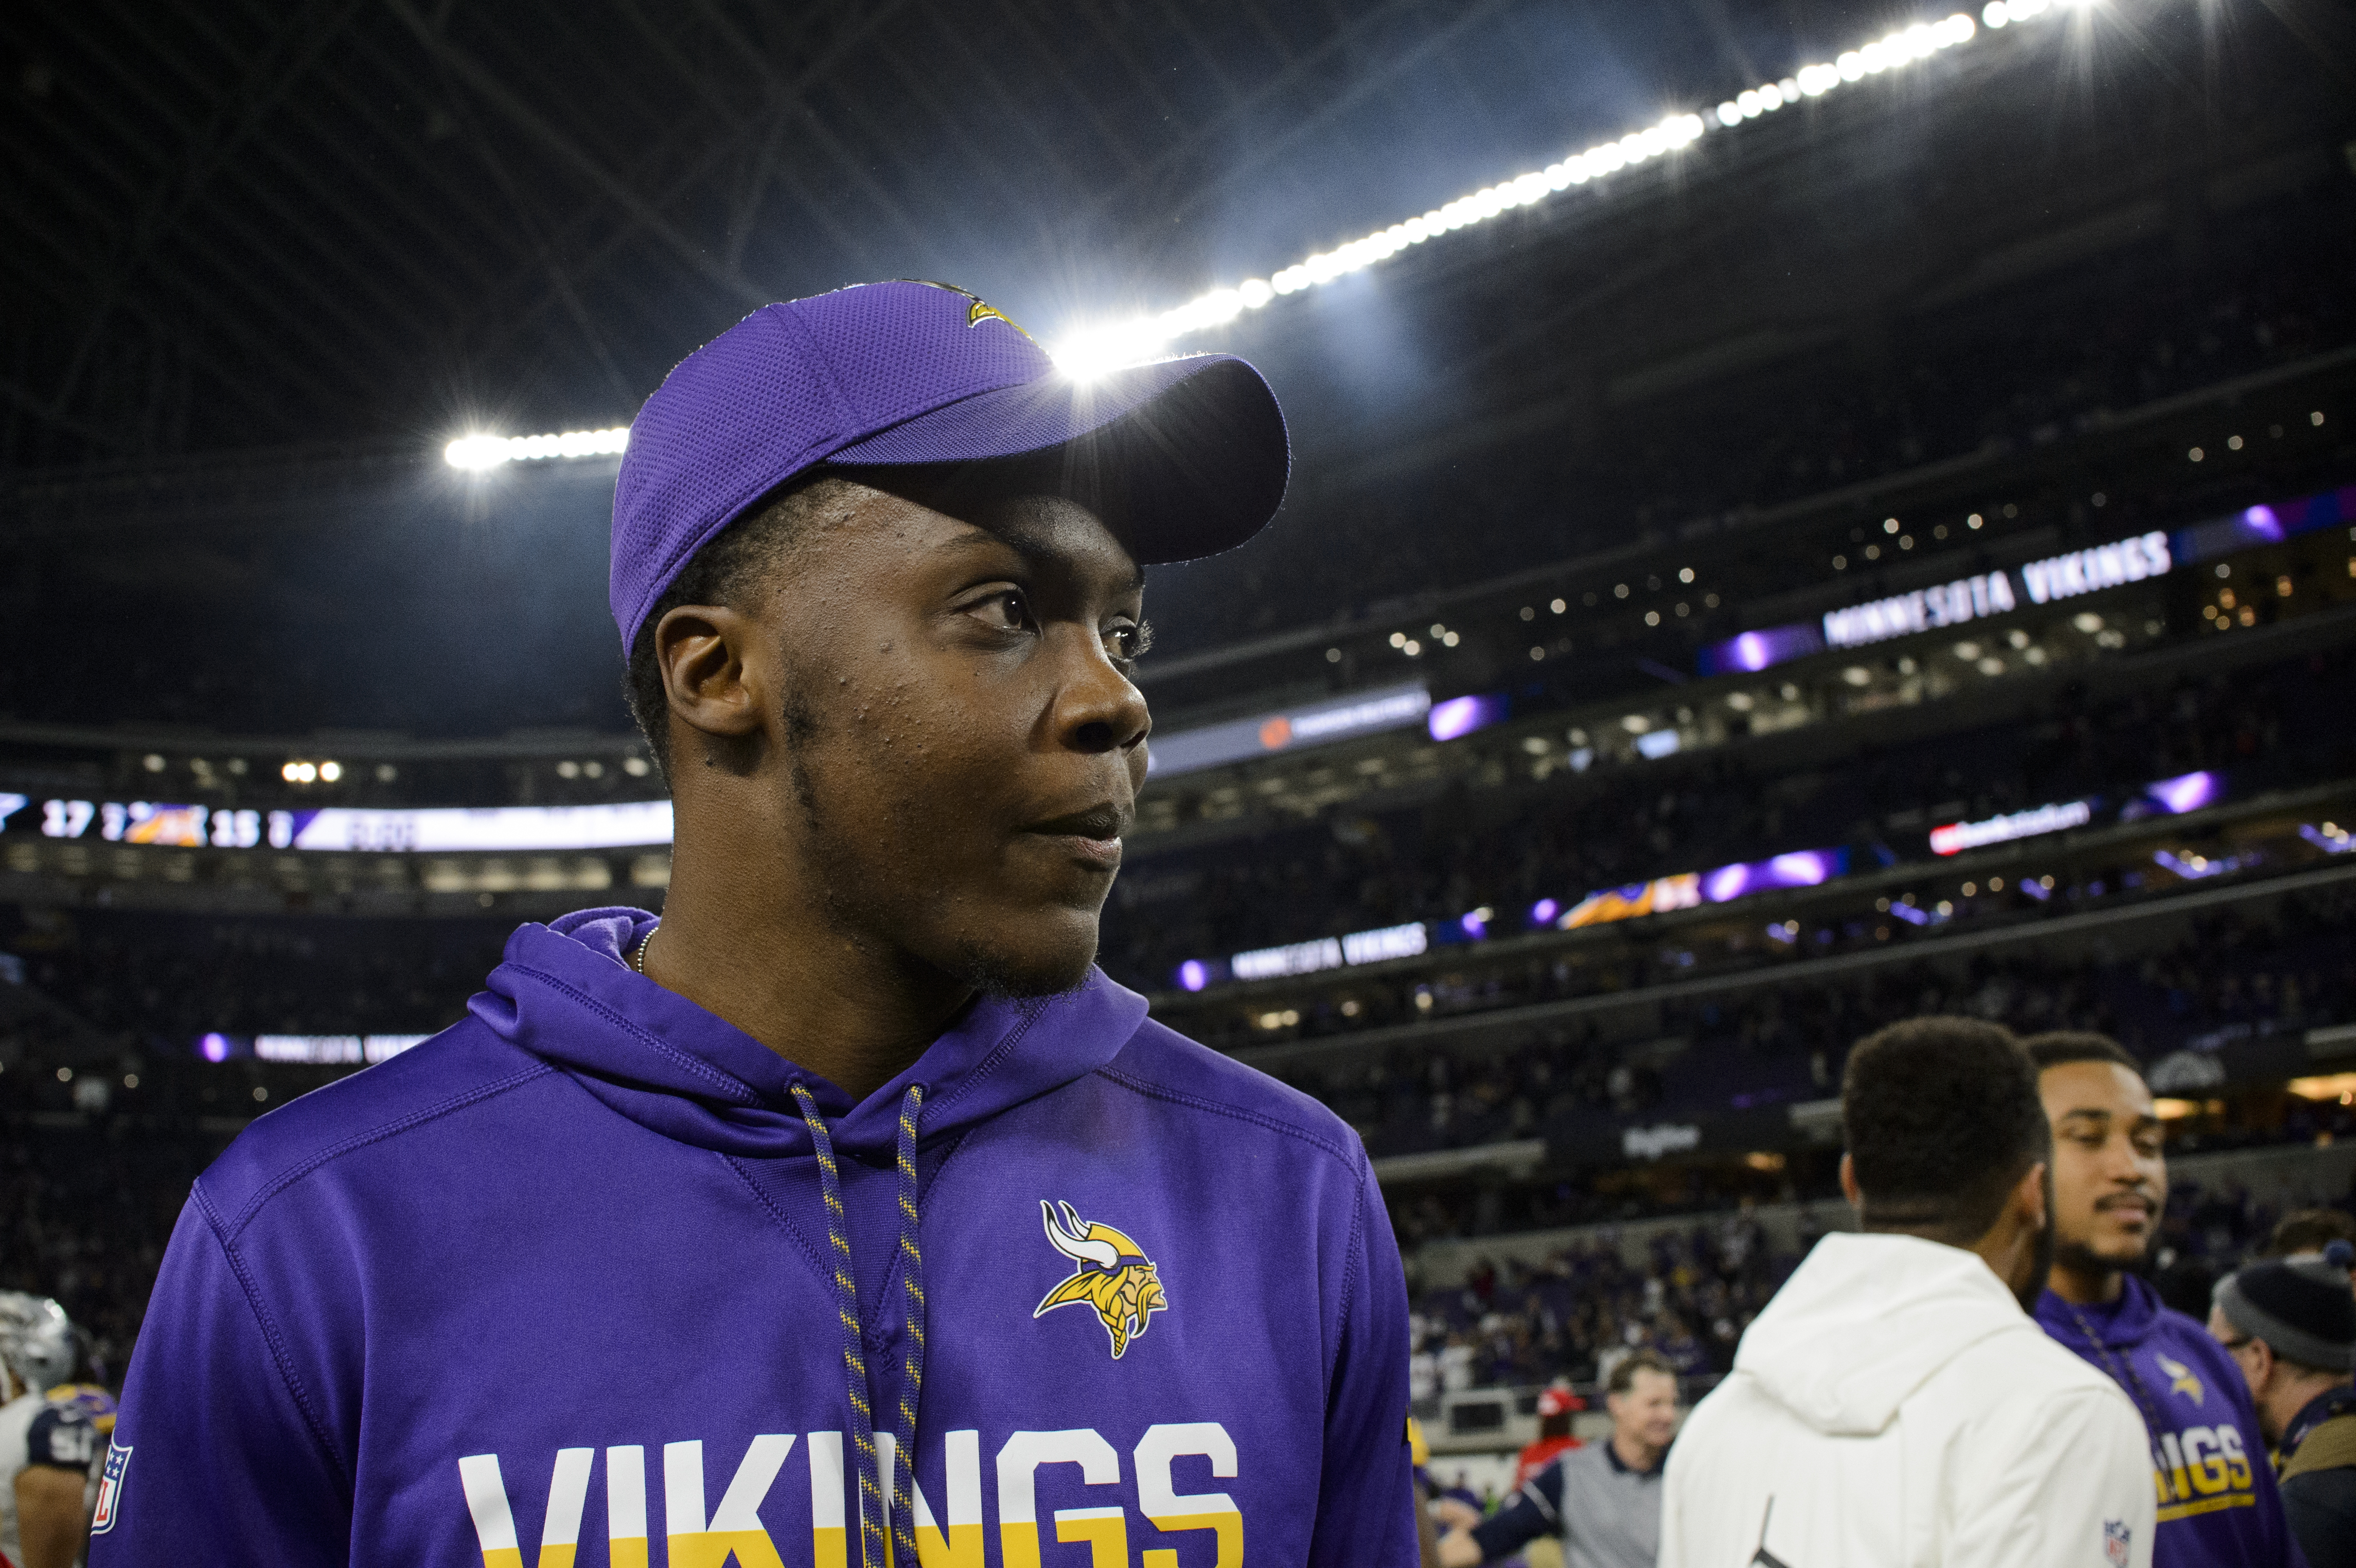 Vikings likely to decline Teddy Bridgewater's 5th-year option